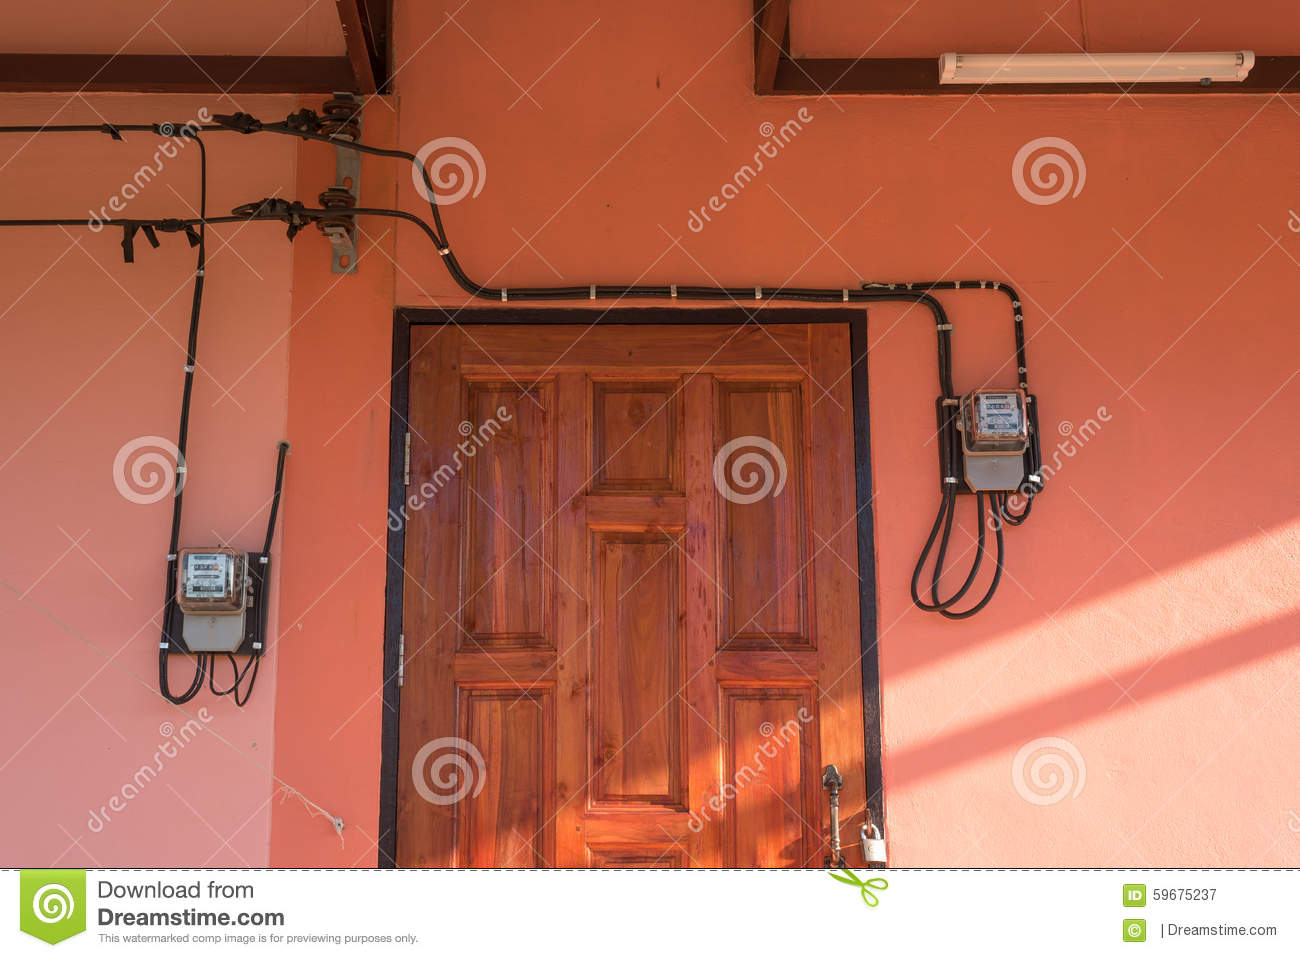 New Construction Wiring Diagram Of House Free Download Wiring